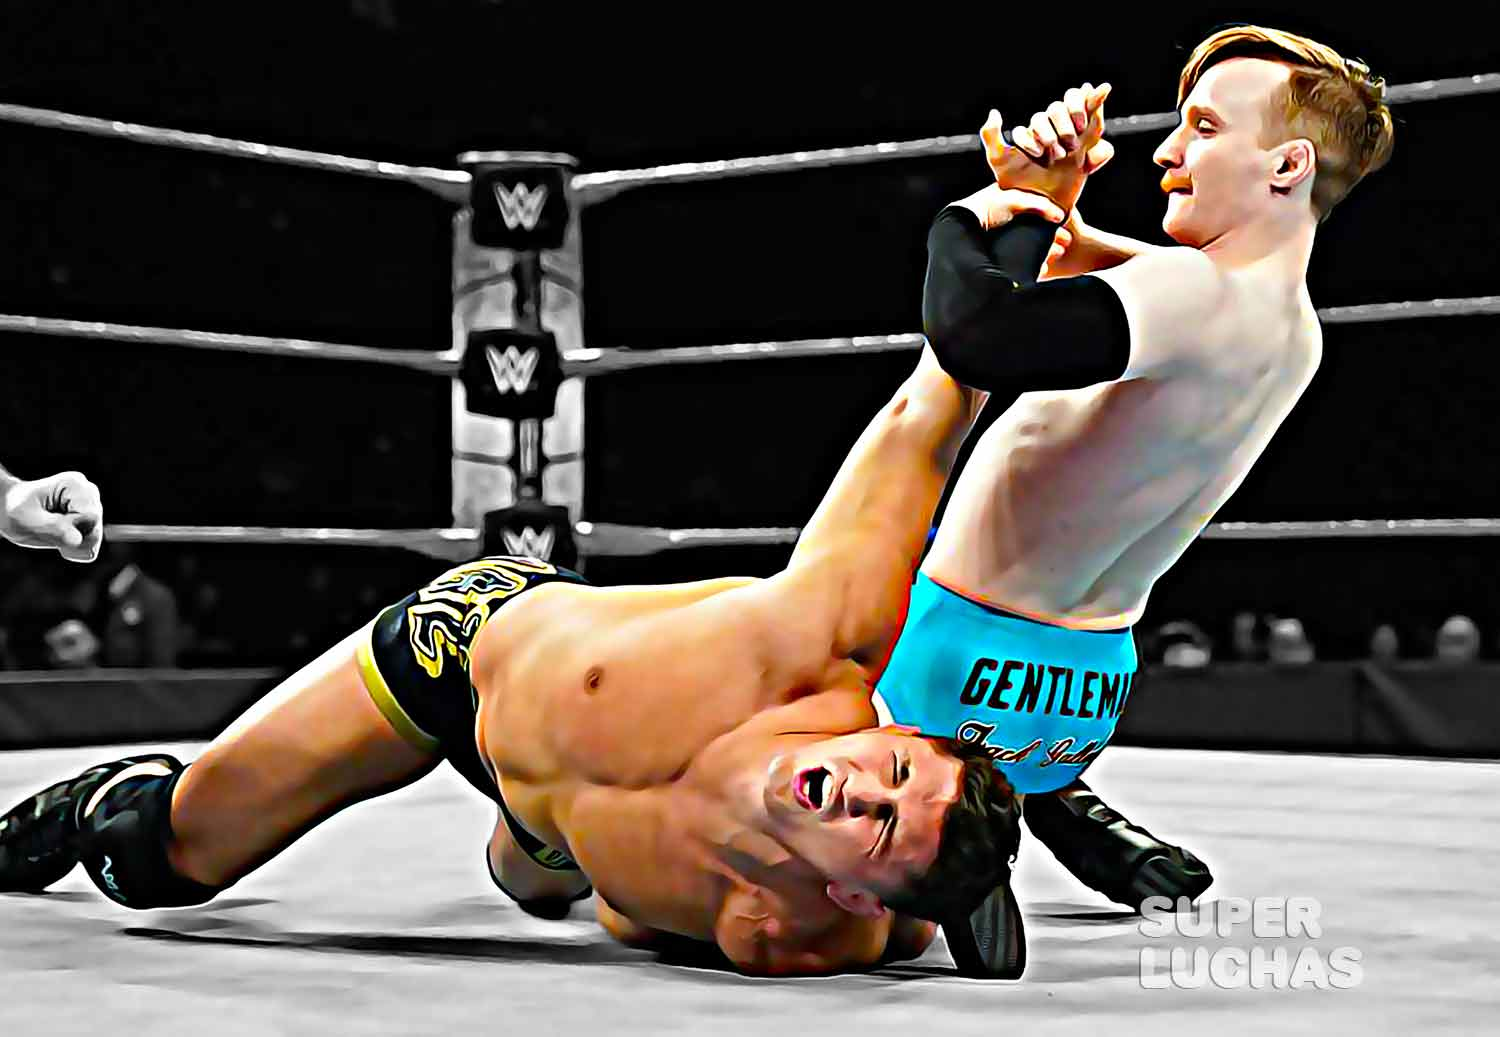 Jack Gallagher vs. Ray Jazikoff